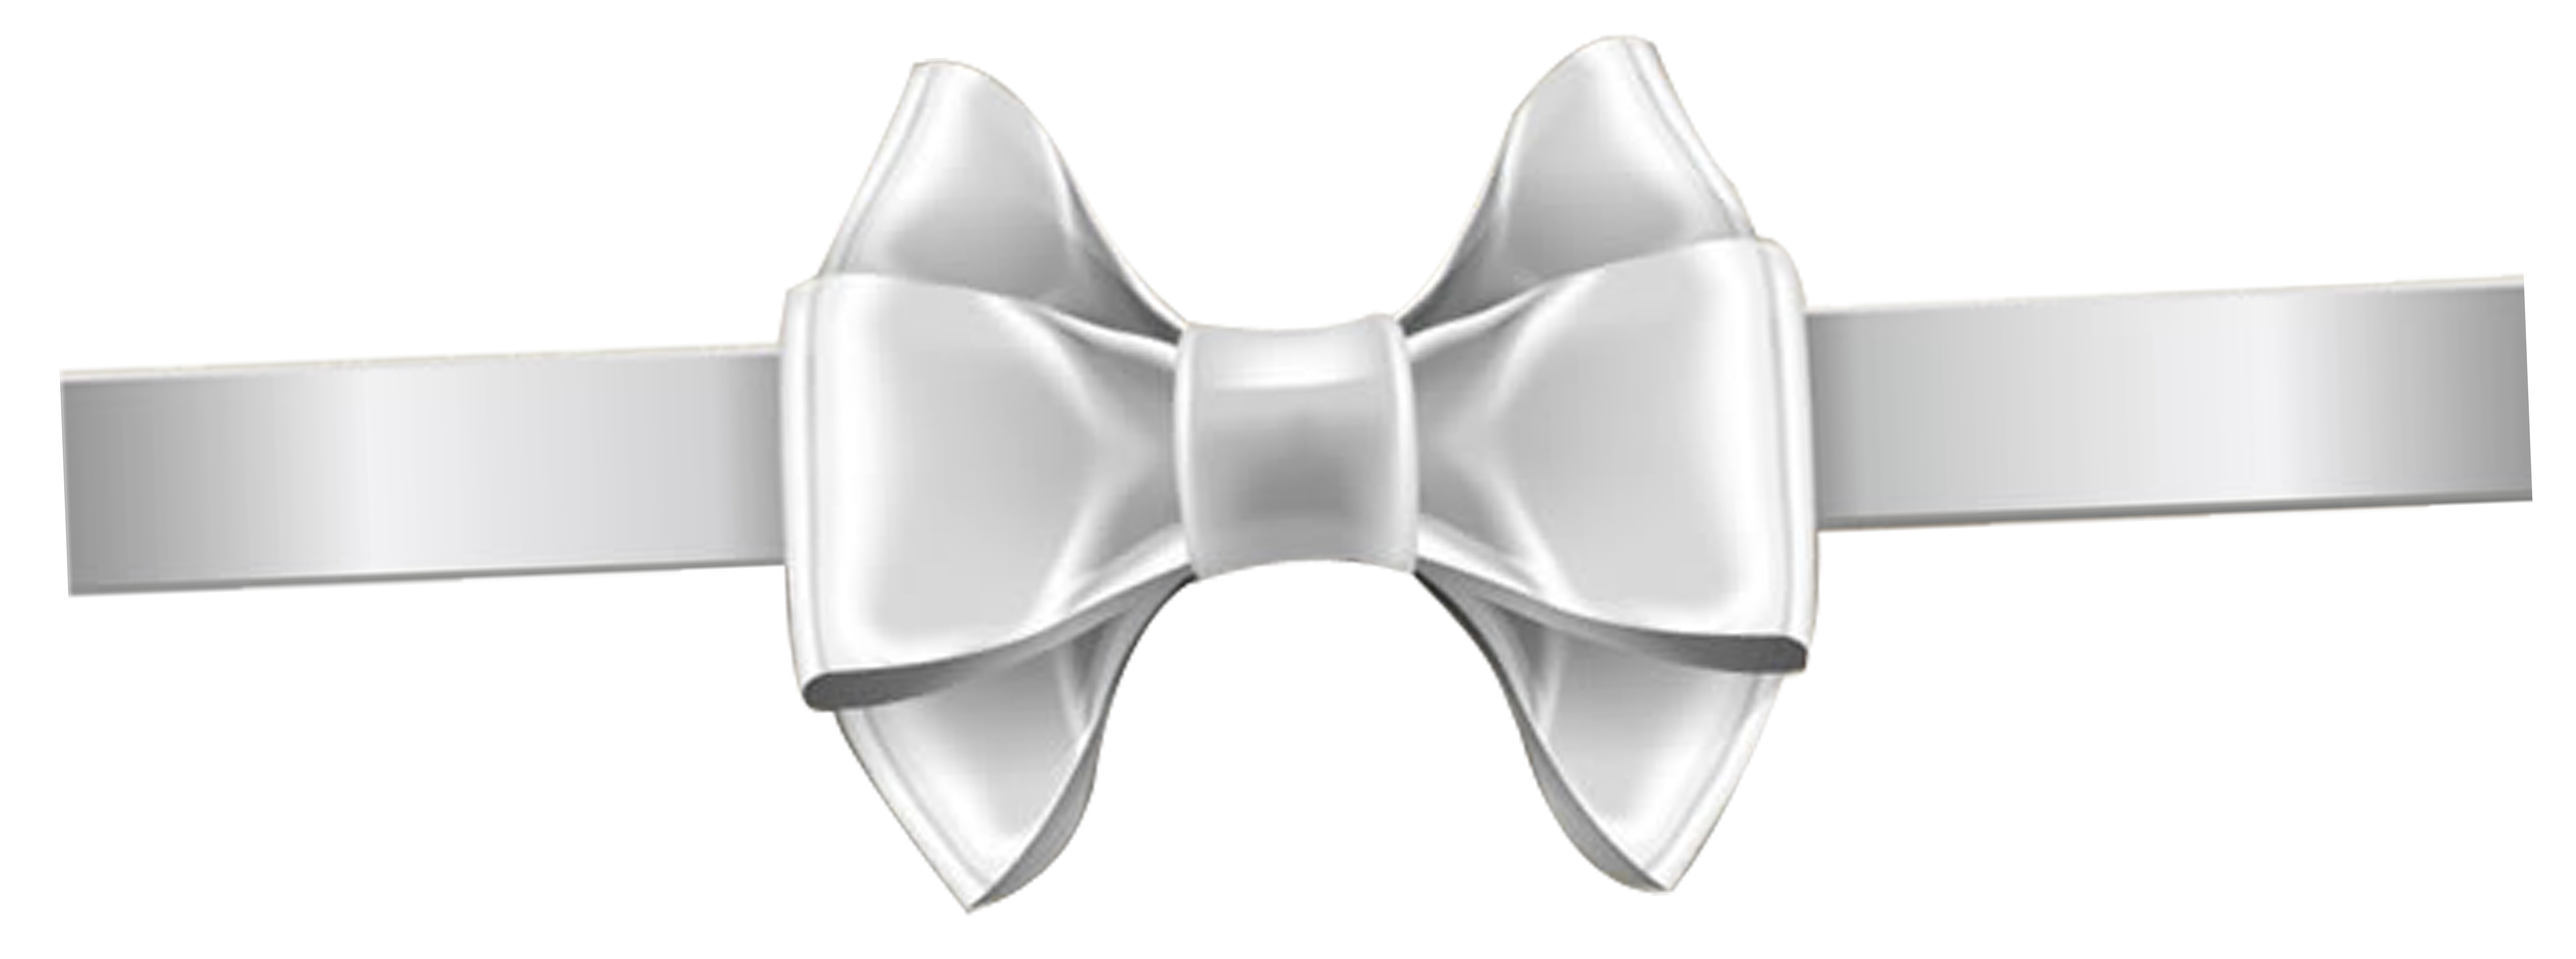 White ribbon bow png. Shoelace knot transprent free